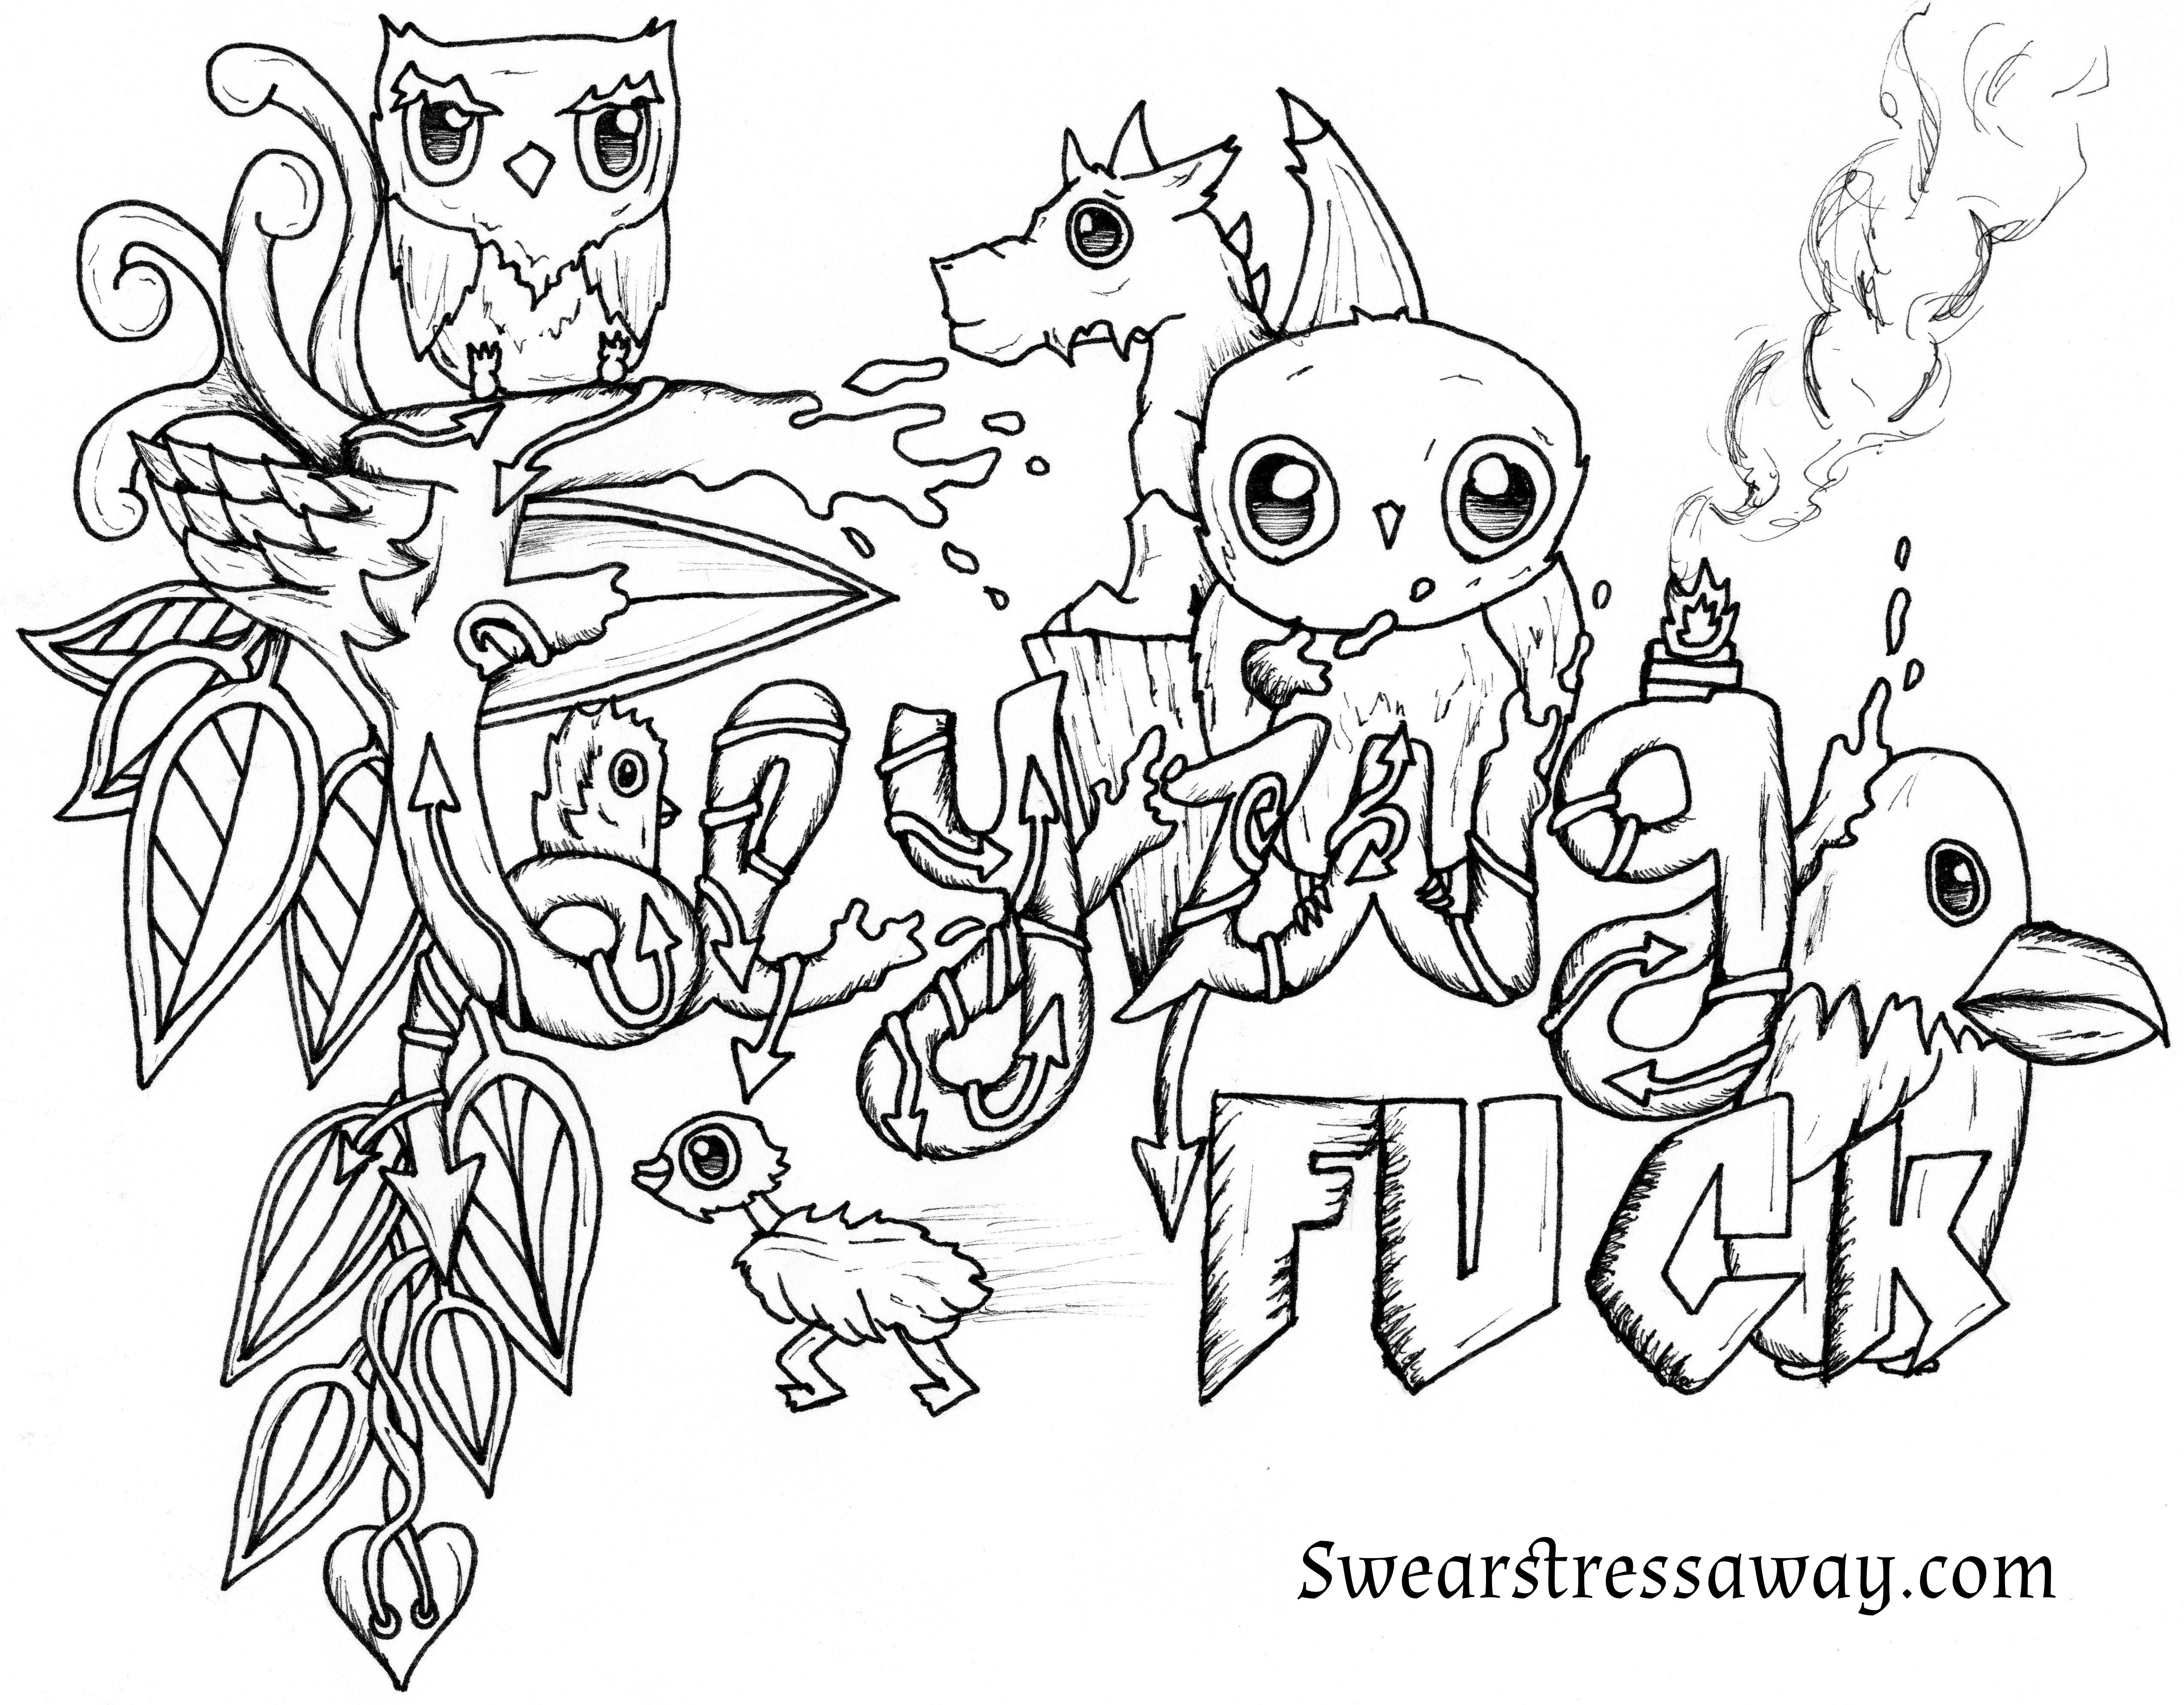 Coloring pages for adults curse words - Free Coloring Book Sweary Sketches Free Coloring Page Flying Fuck Swear Word